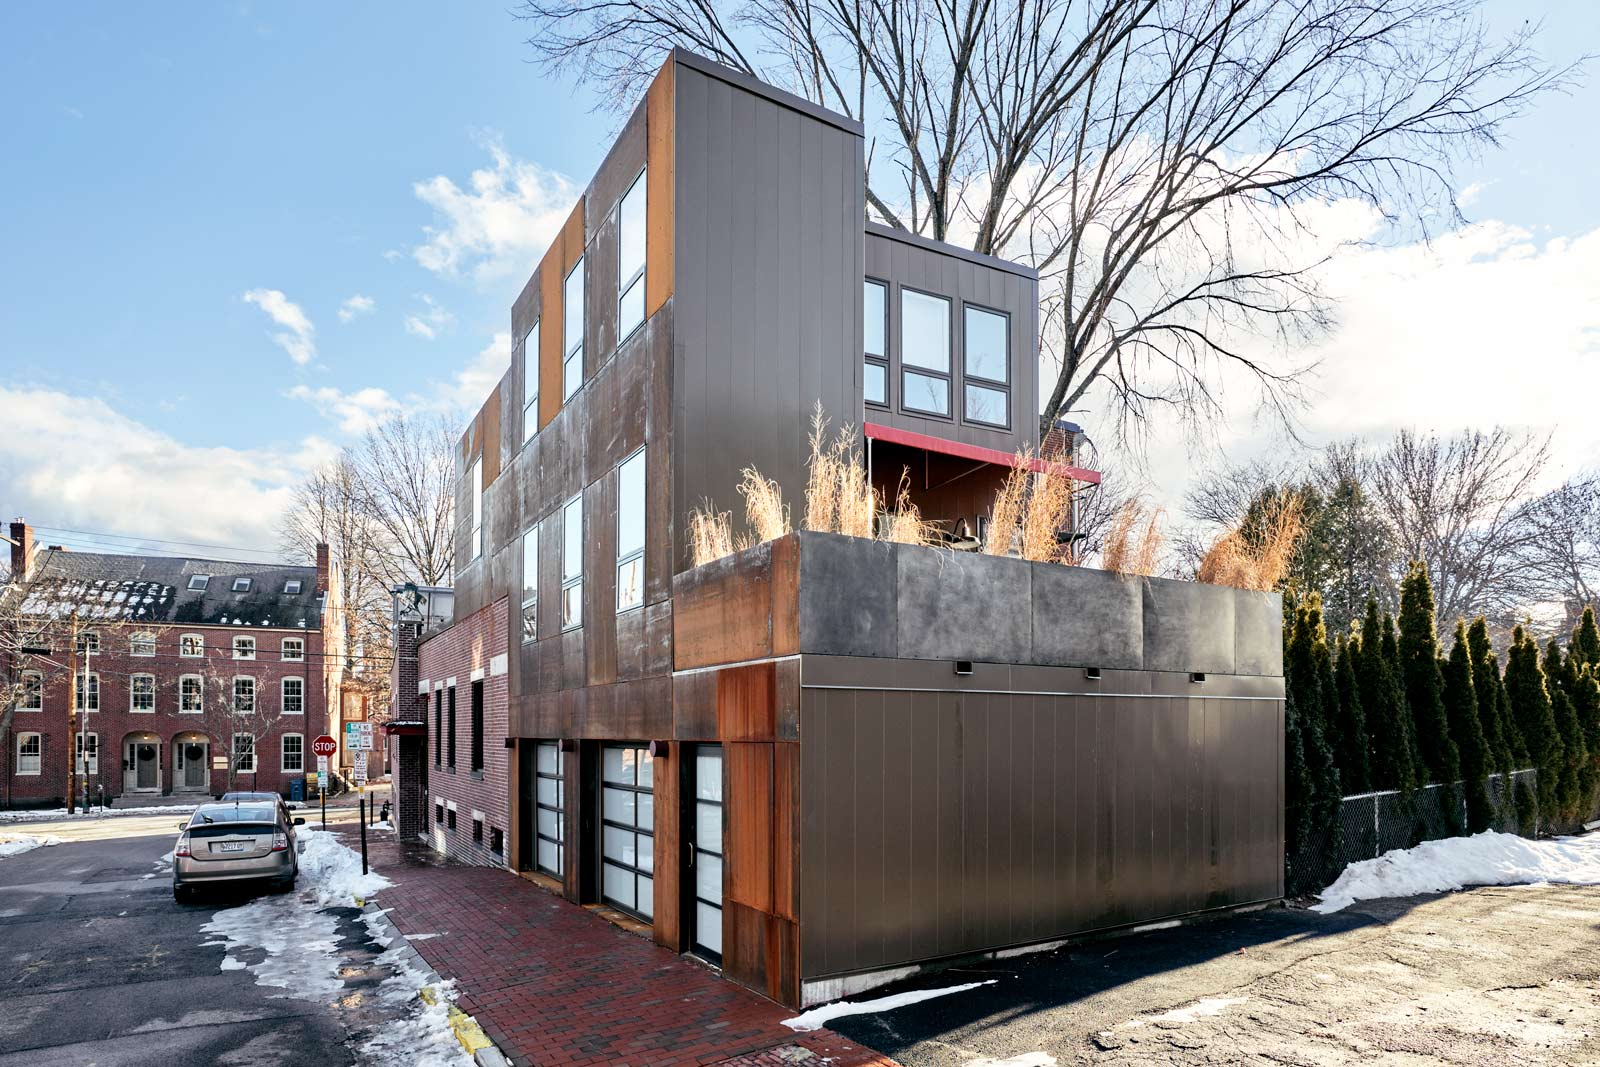 Corten steel panels cover the South Street façade. Over time, the rust will blend with the red brick of the neighborhood. Because of a special treatment, the rust on corten steel protects rather than corrodes.